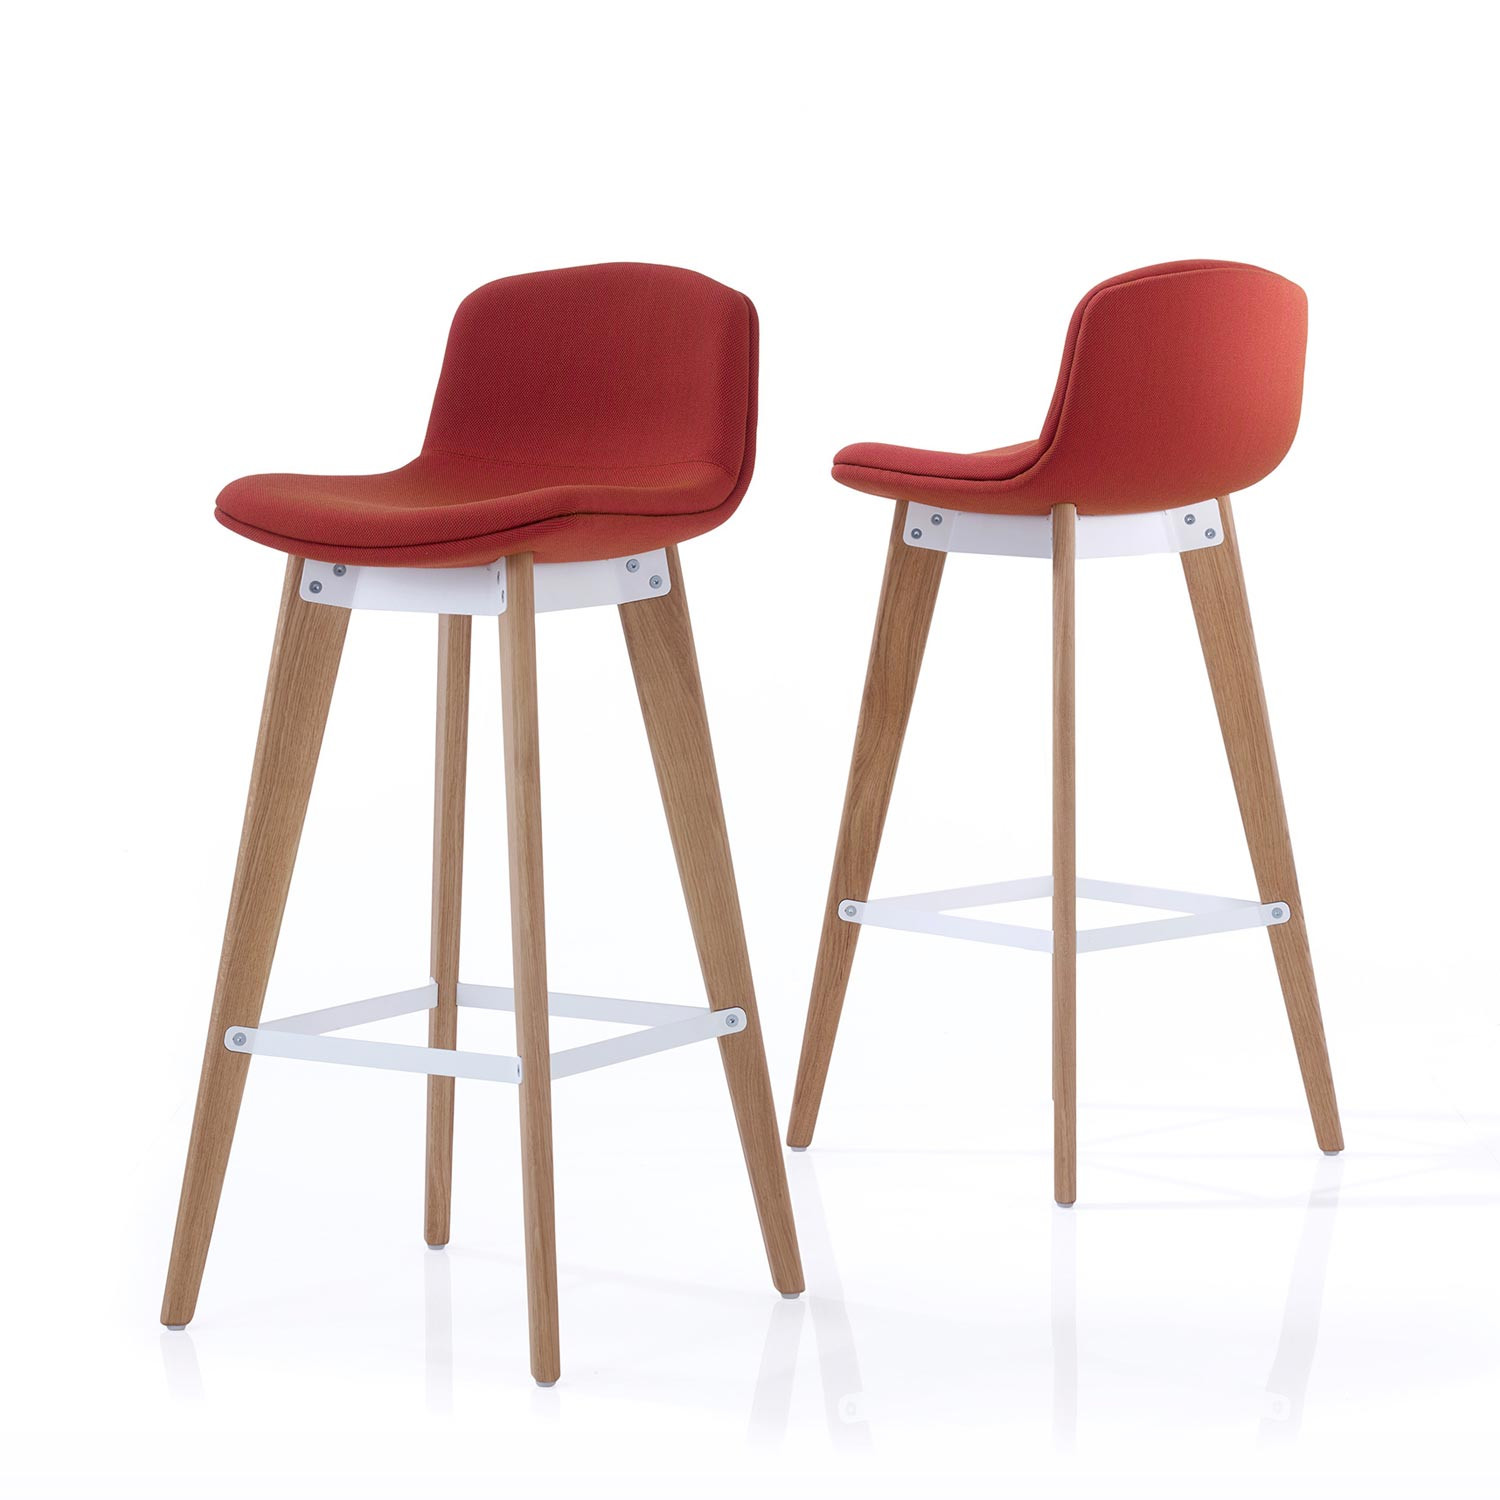 Coda Bar Stools With Wooden Legs